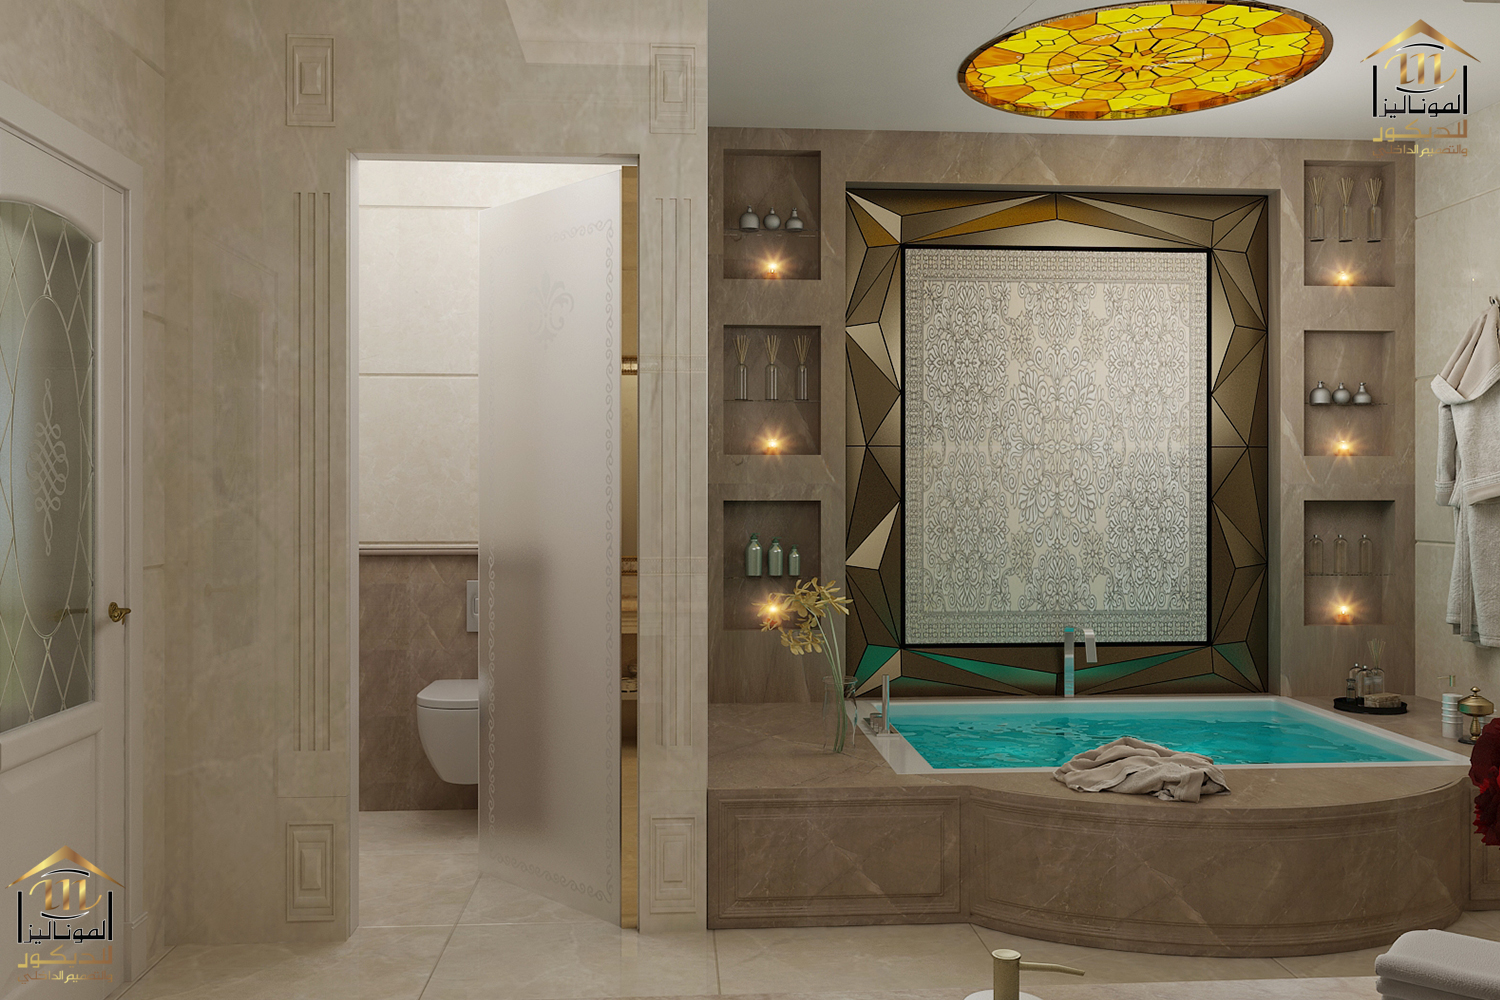 almonaliza group_decoration&interior design_bathrooms (21).jpg